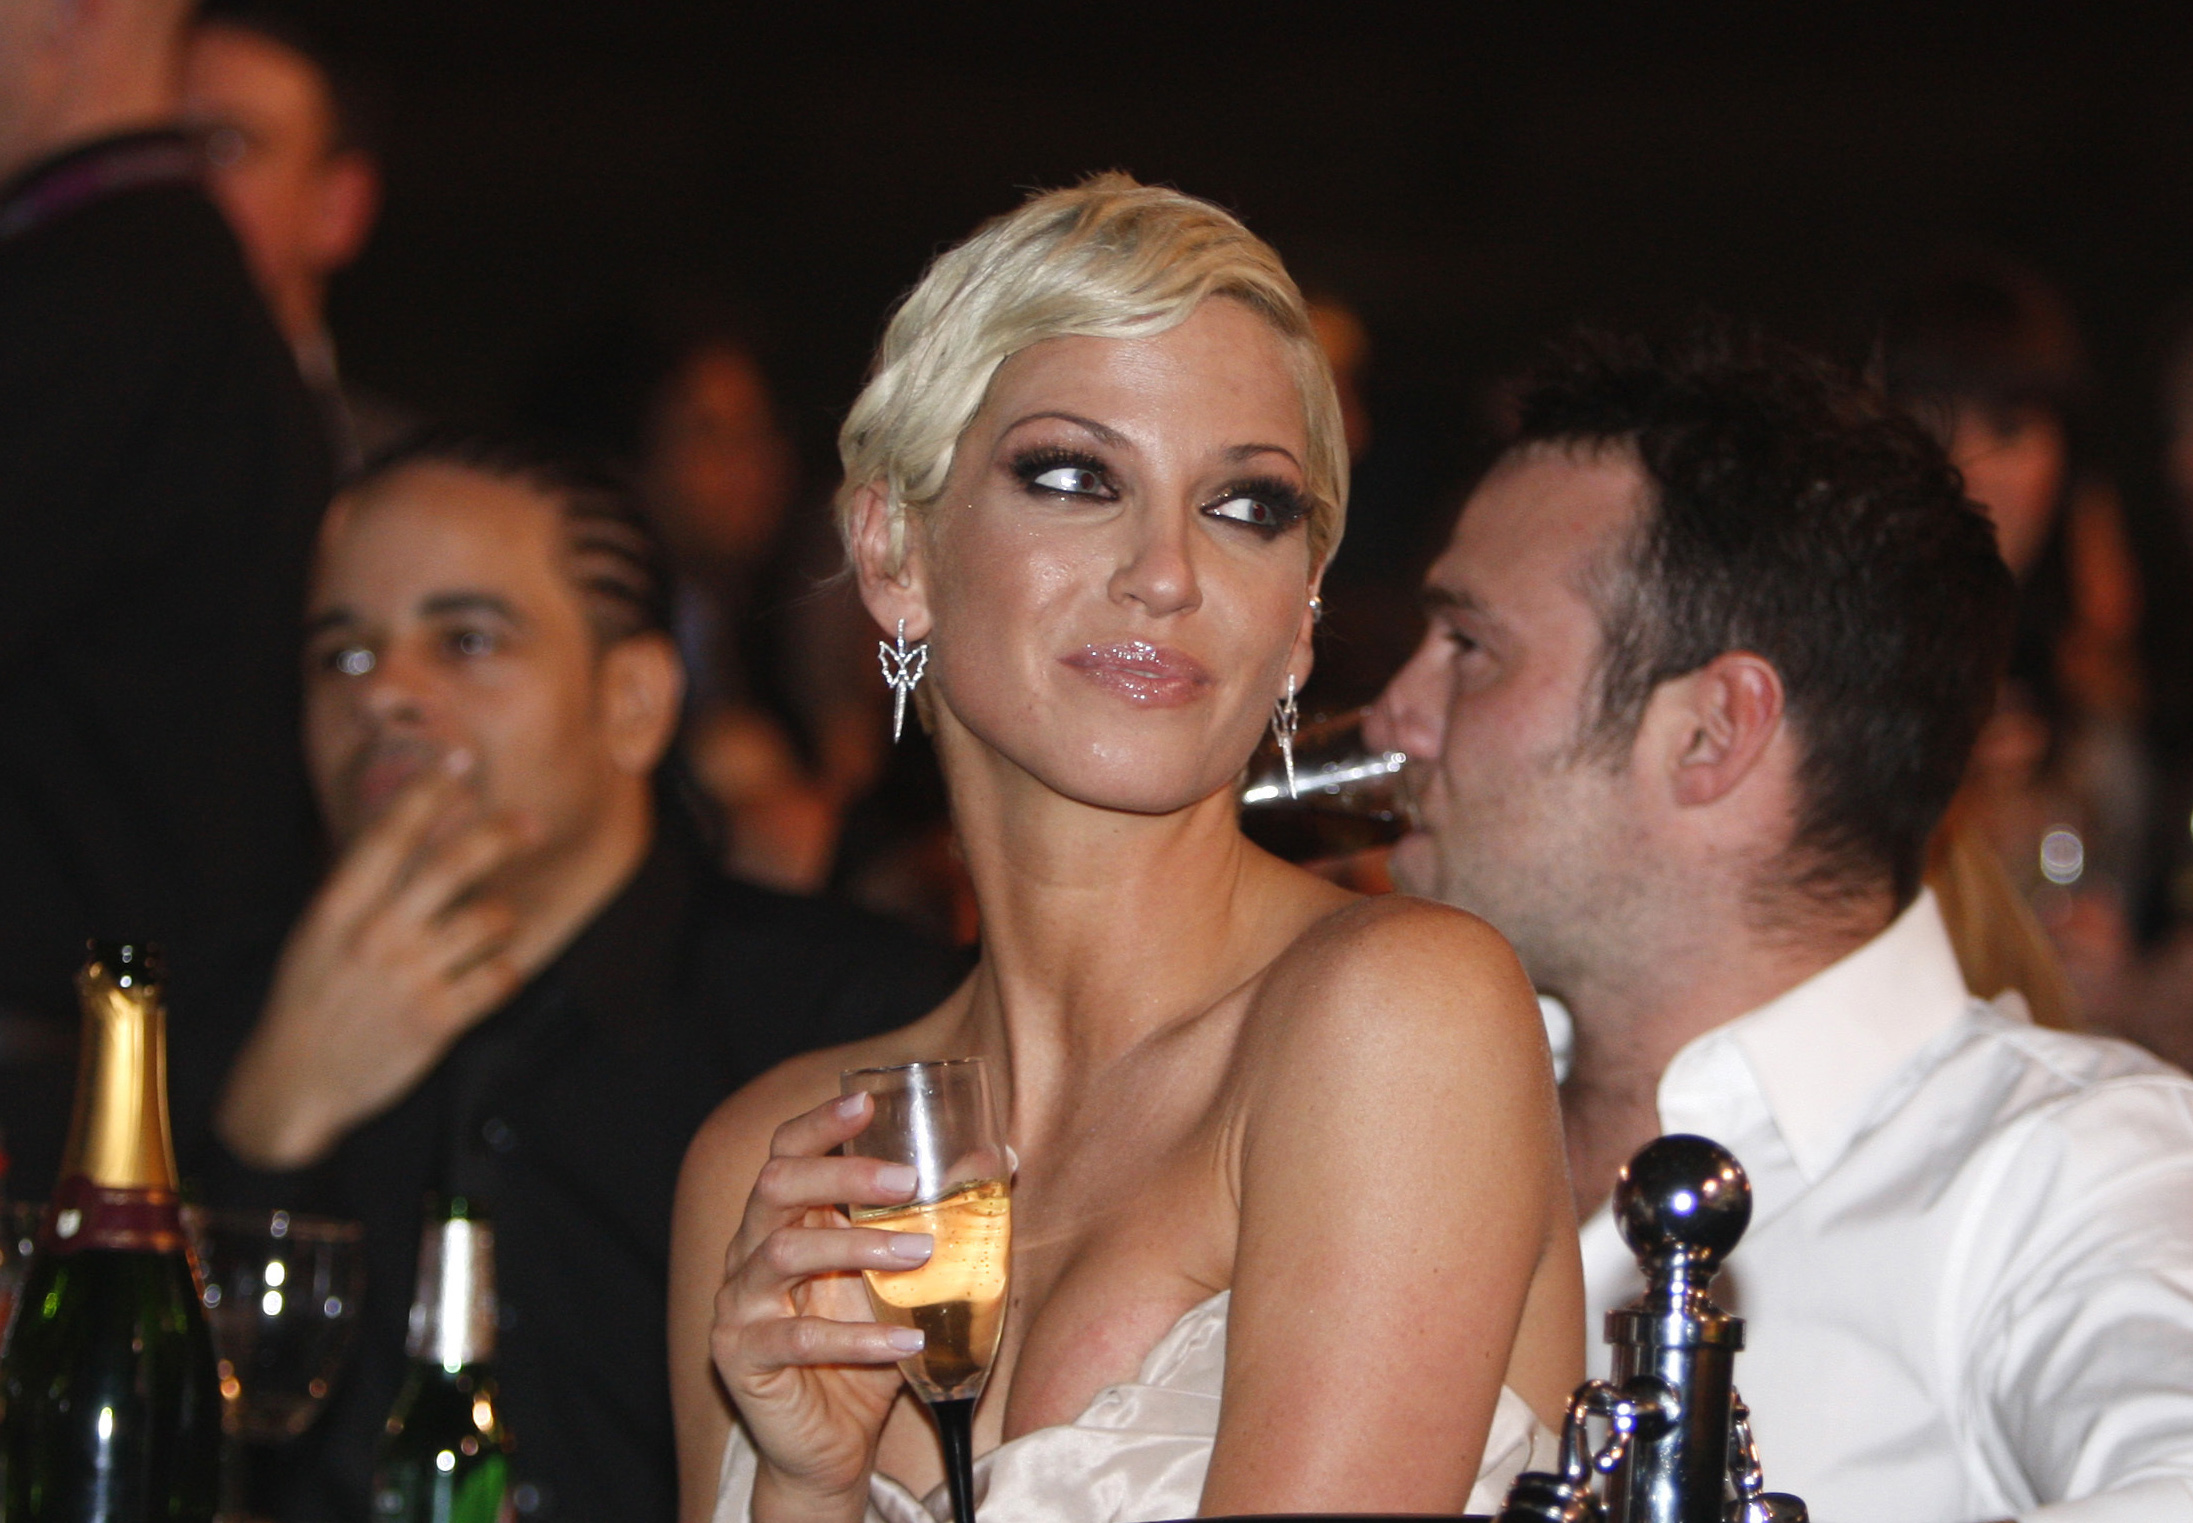 Singer Sarah Harding from British band Girls Aloud, attends the Brit Awards 2009 ceremony at Earls Court exhibition centre in London, England, on Feb. 18, 2009.